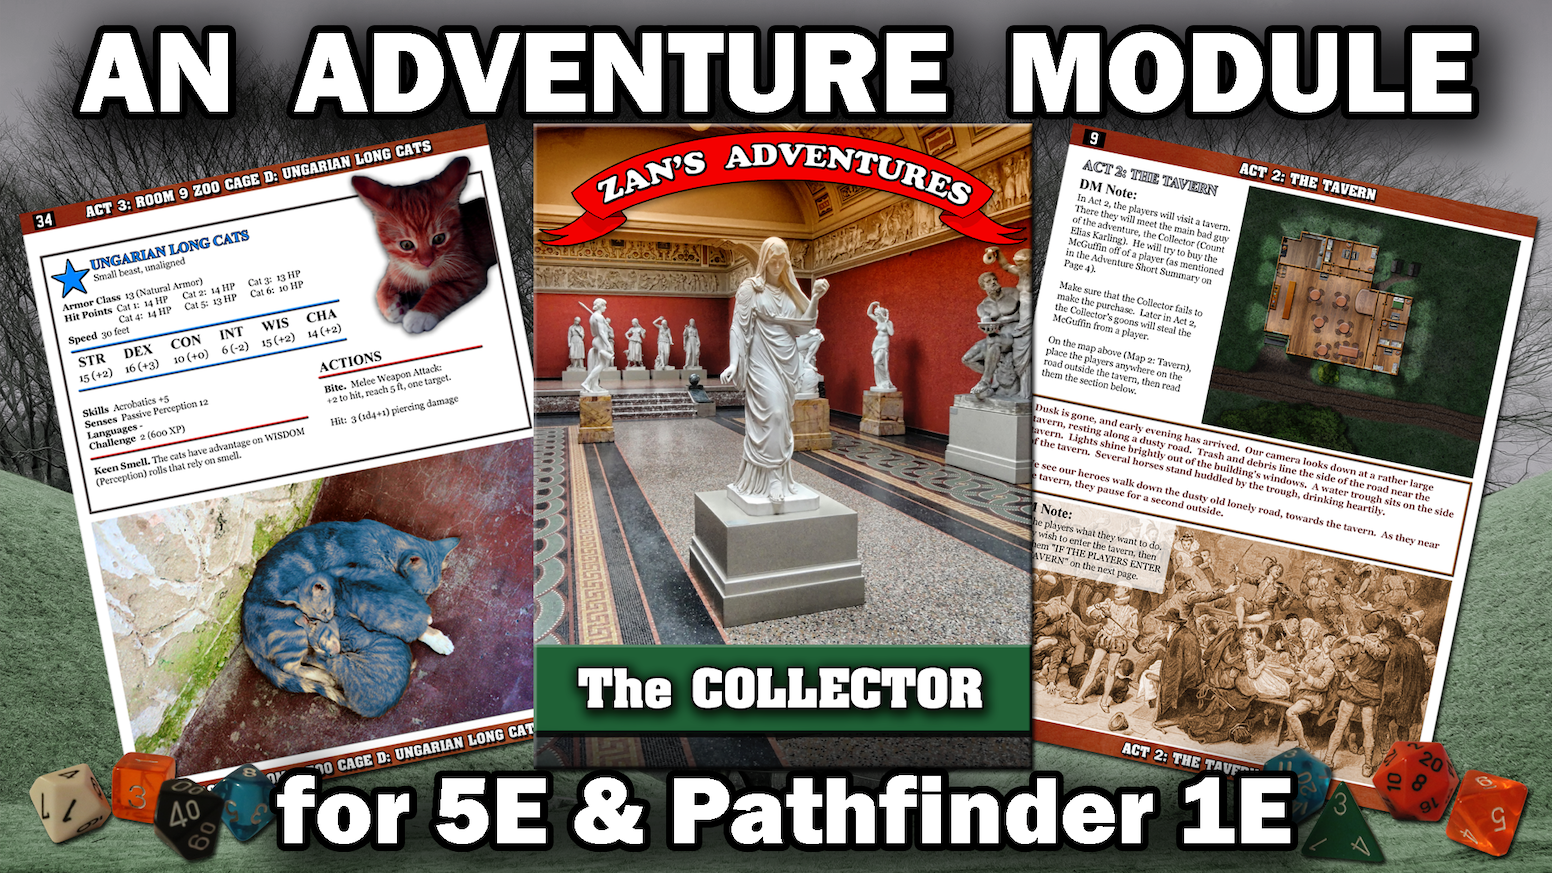 The Collector, a man of wealth and power, will stop at nothing to get that which he desires. RPG Adventure Module 5E D&D, Pathfinder 1E